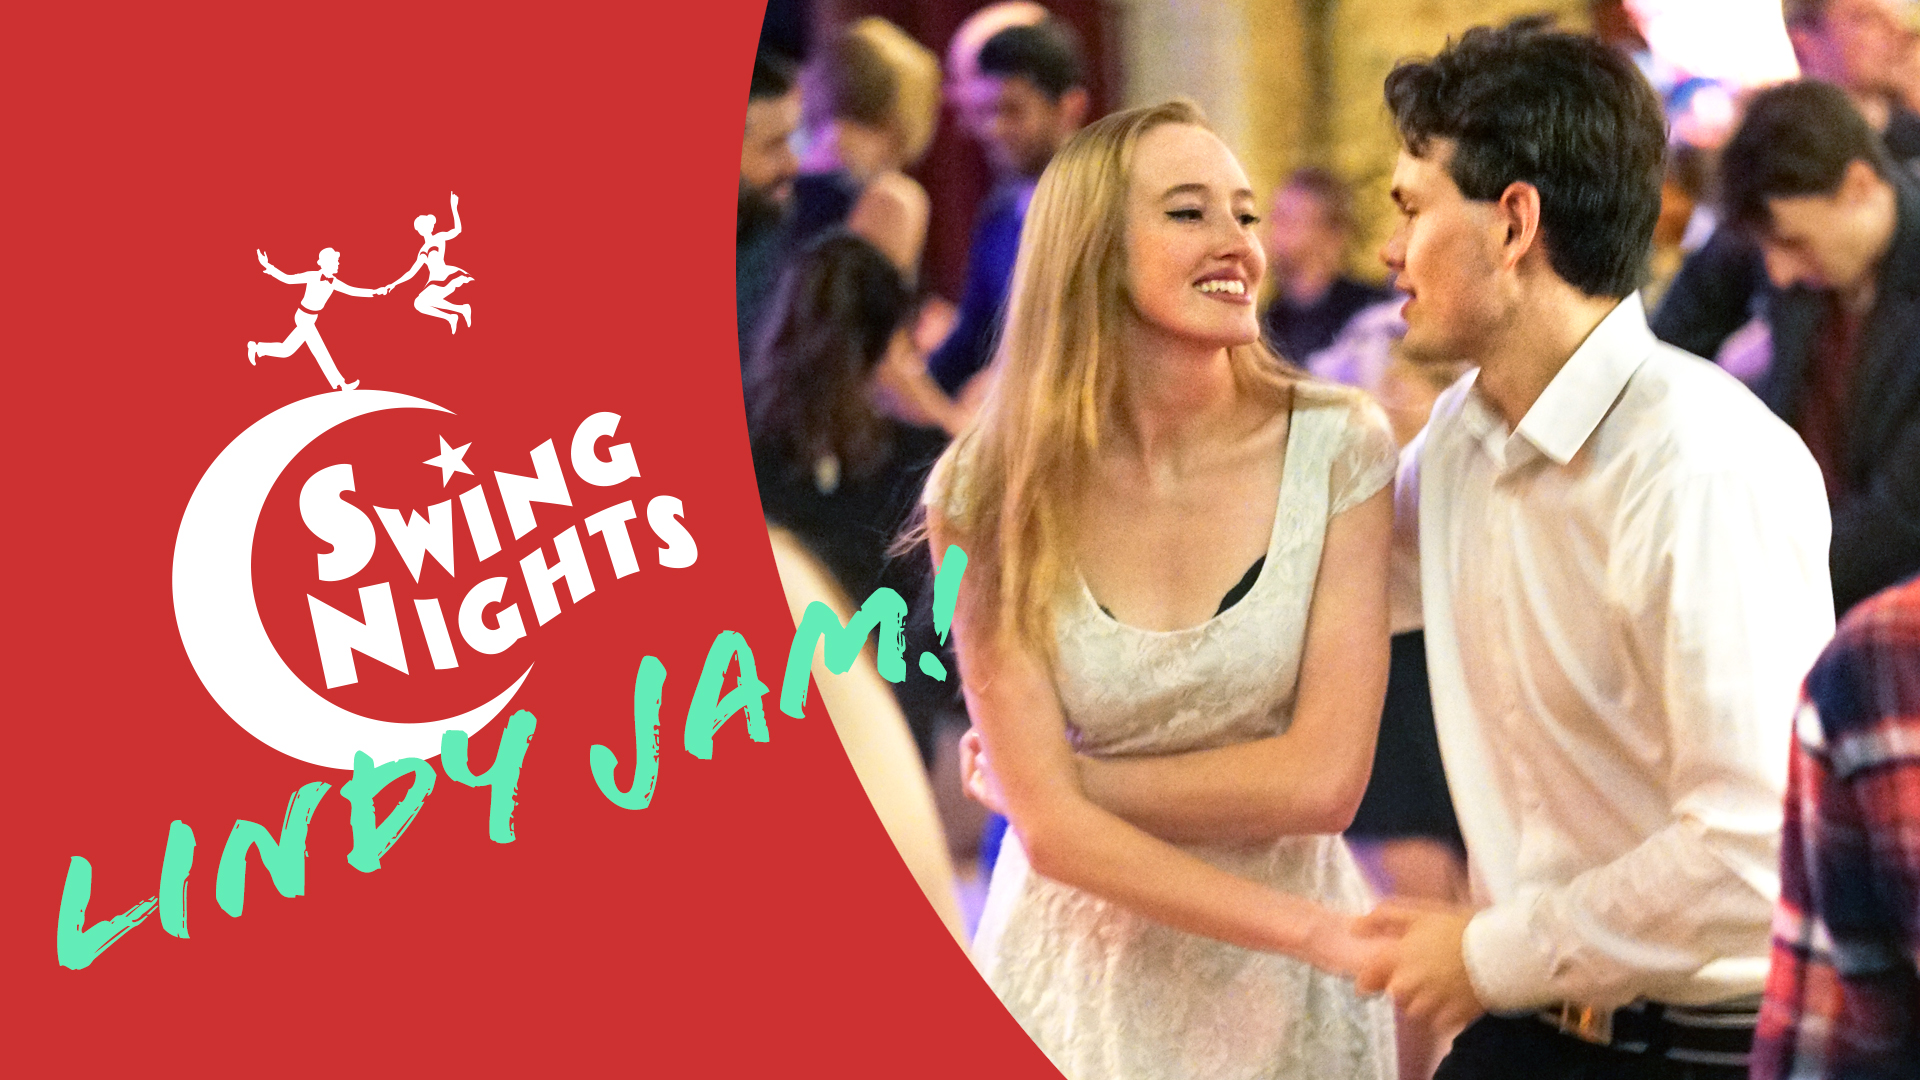 Swing Nights' Lindy Jam!